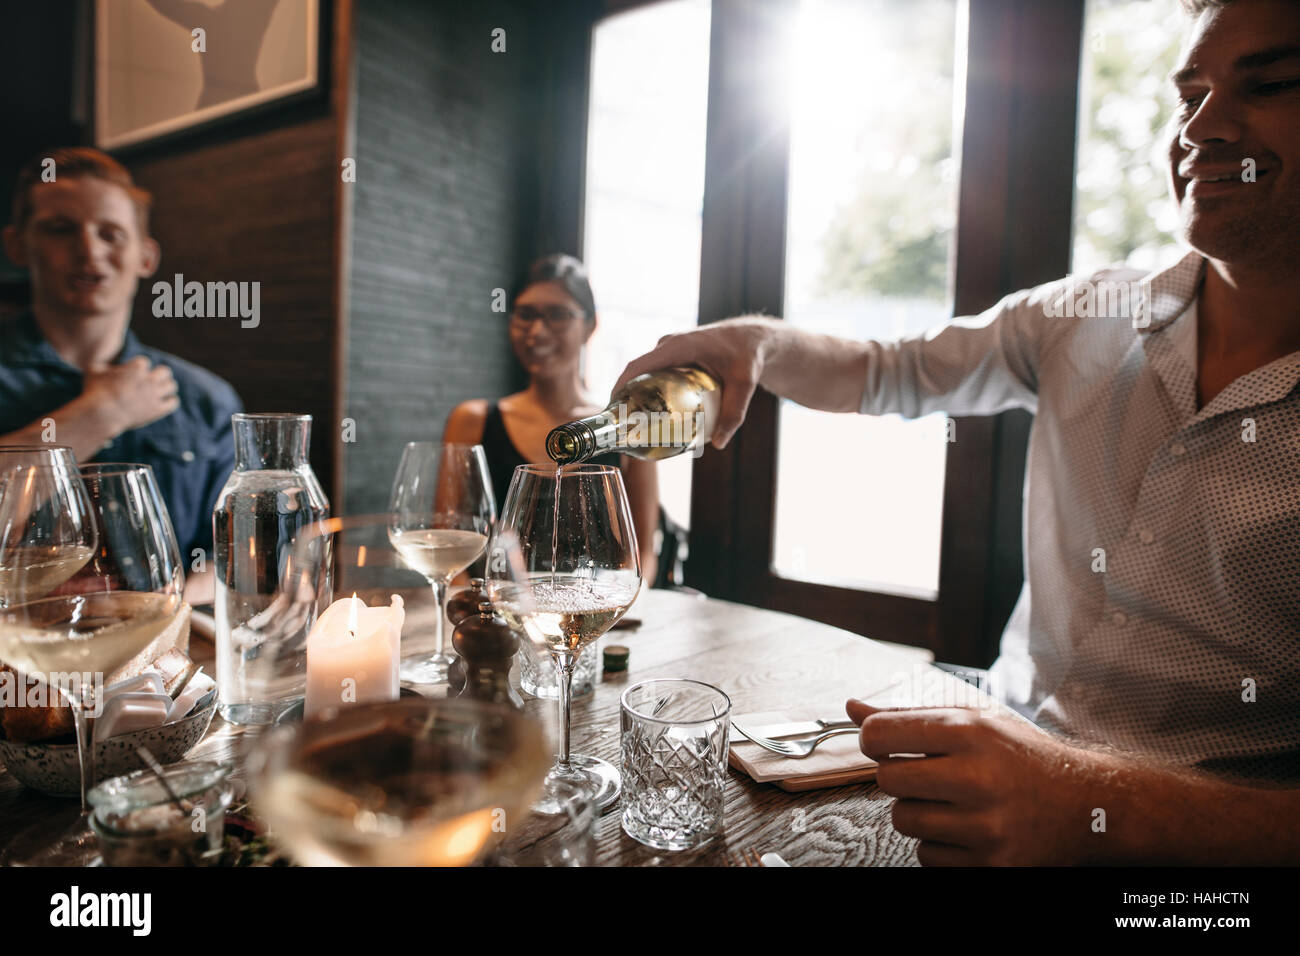 Group of friends enjoying an meal with wine at a restaurant. Happy young man pouring wine in glasses. - Stock Image